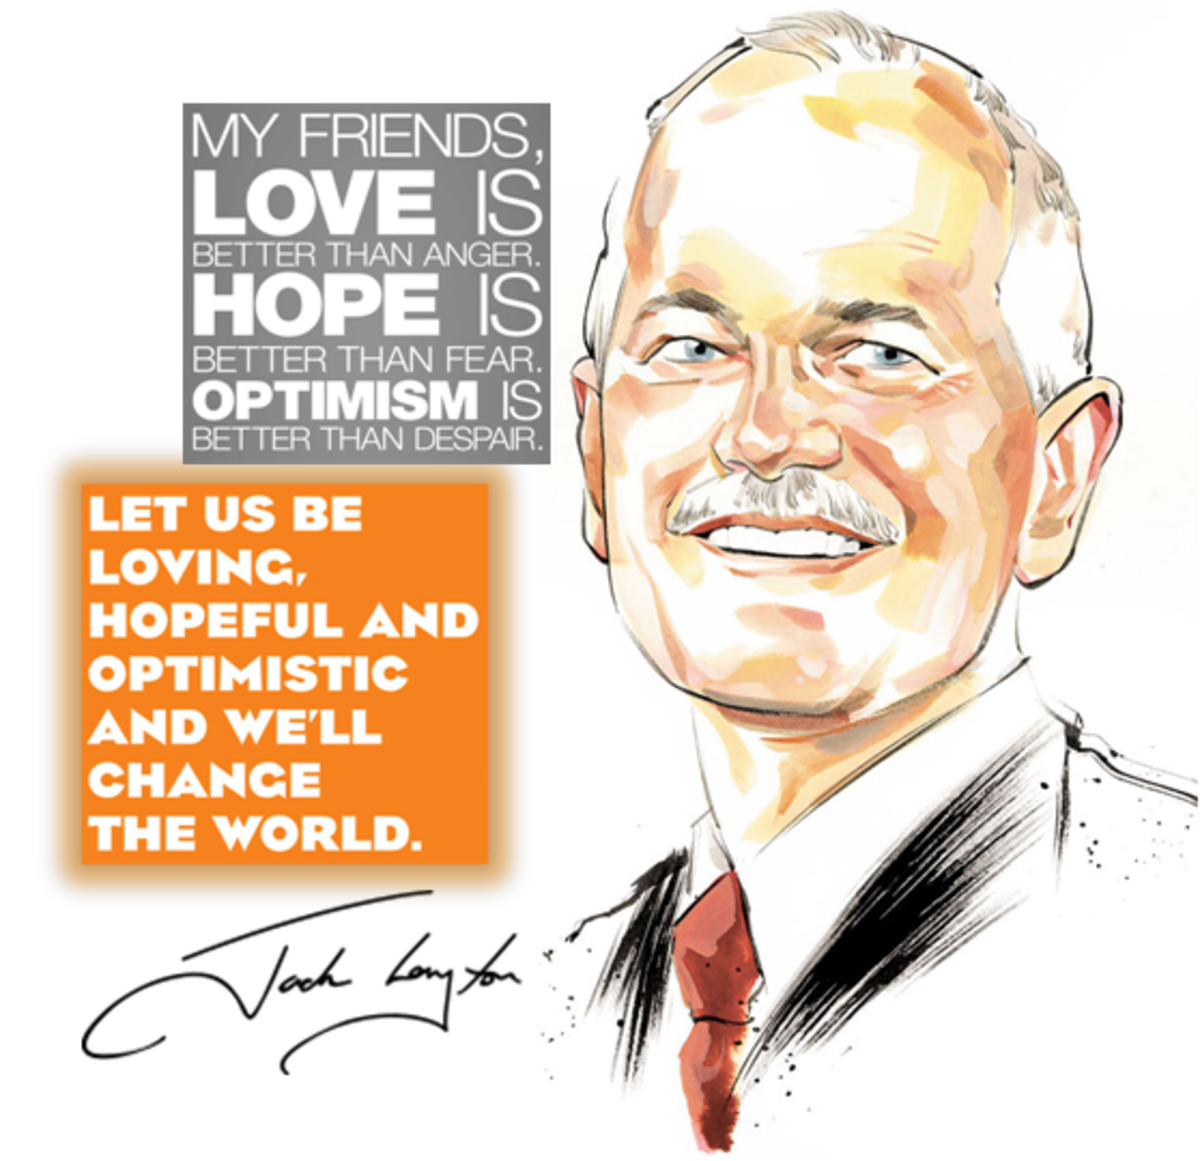 Jack Layton (July 18, 1950 – August 22, 2011) ... an embodiment of hope